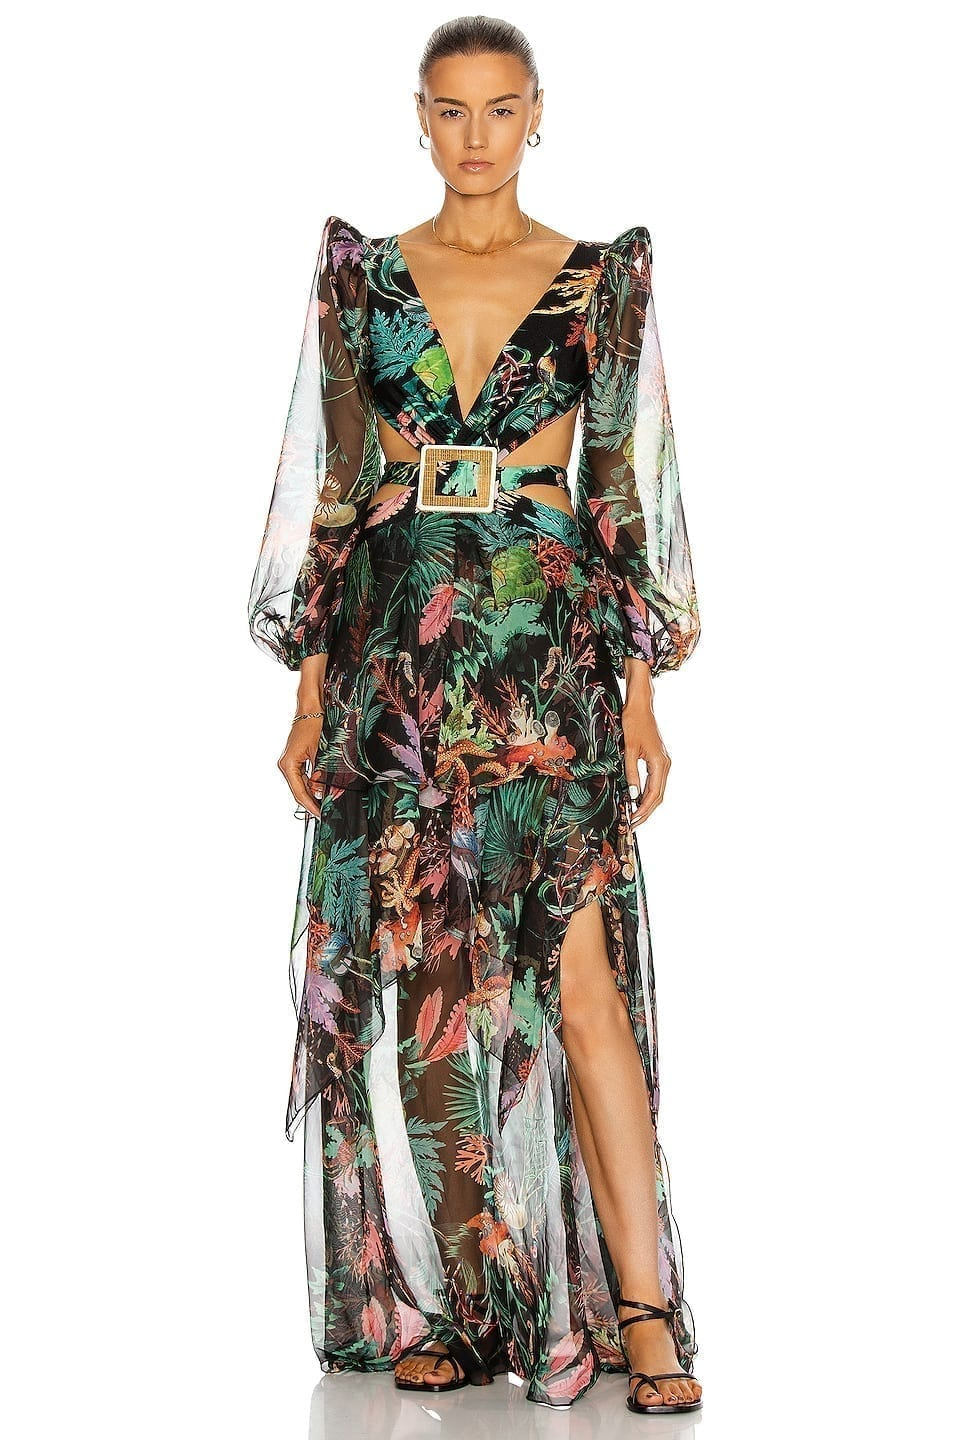 PATBO Oasis Long Sleeve Cut-Out Dress